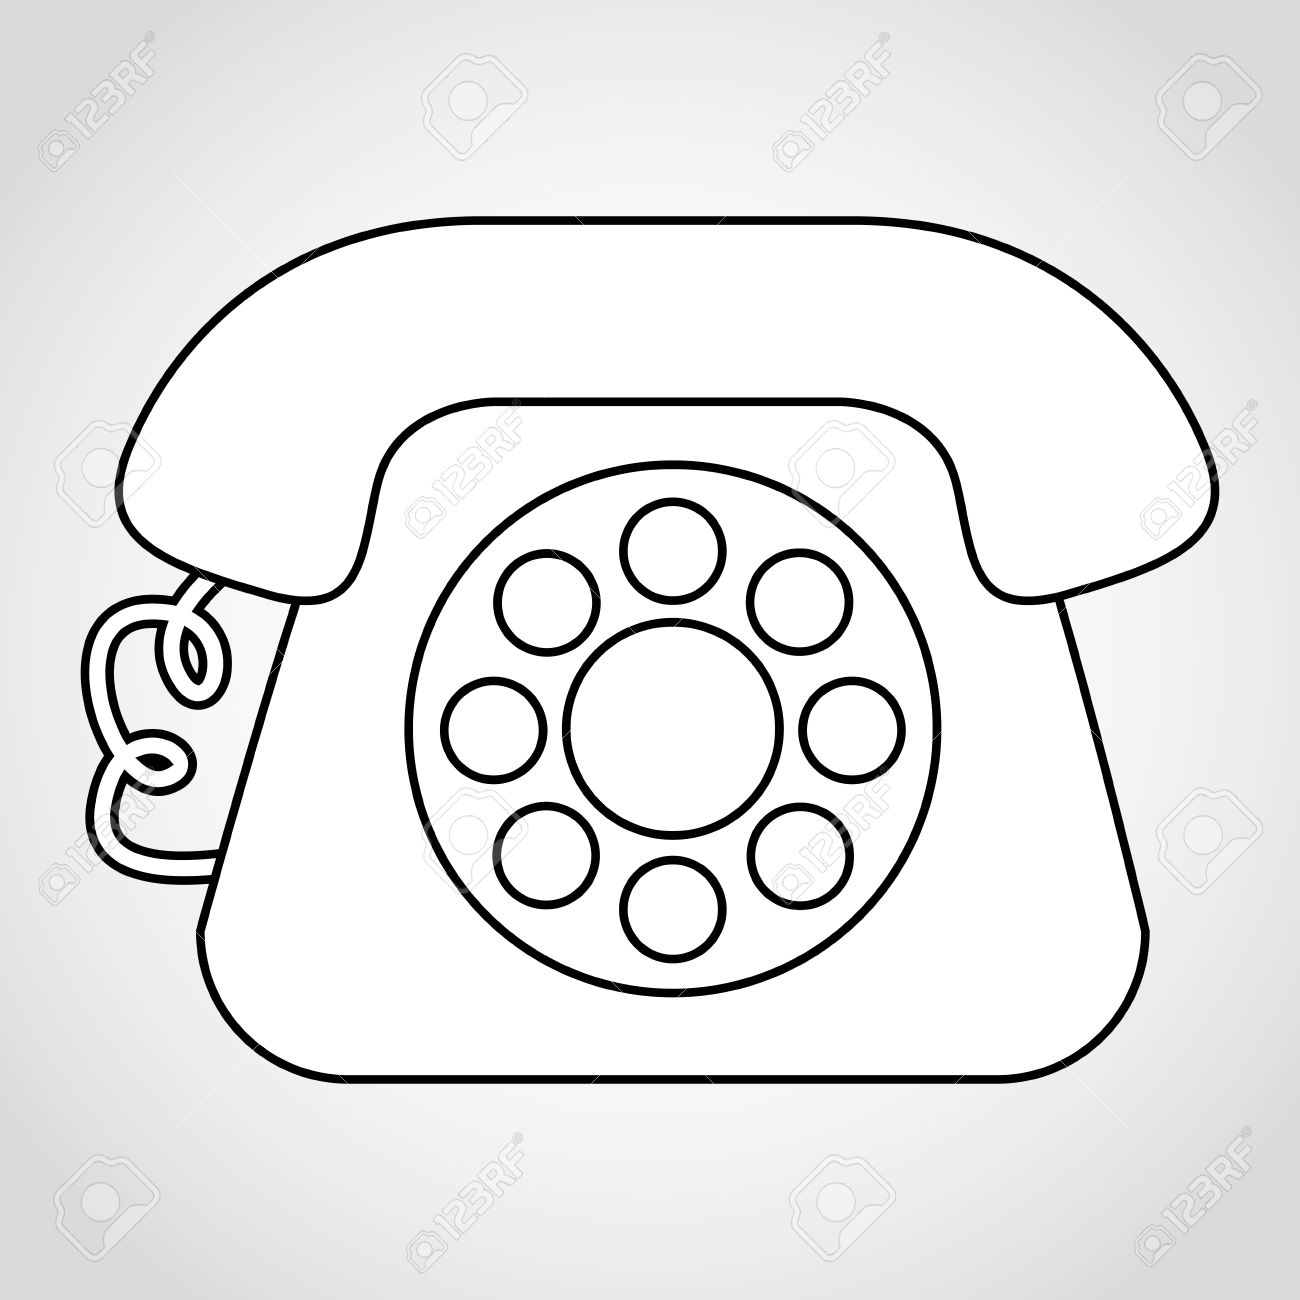 old telephone design royalty free cliparts vectors and stock